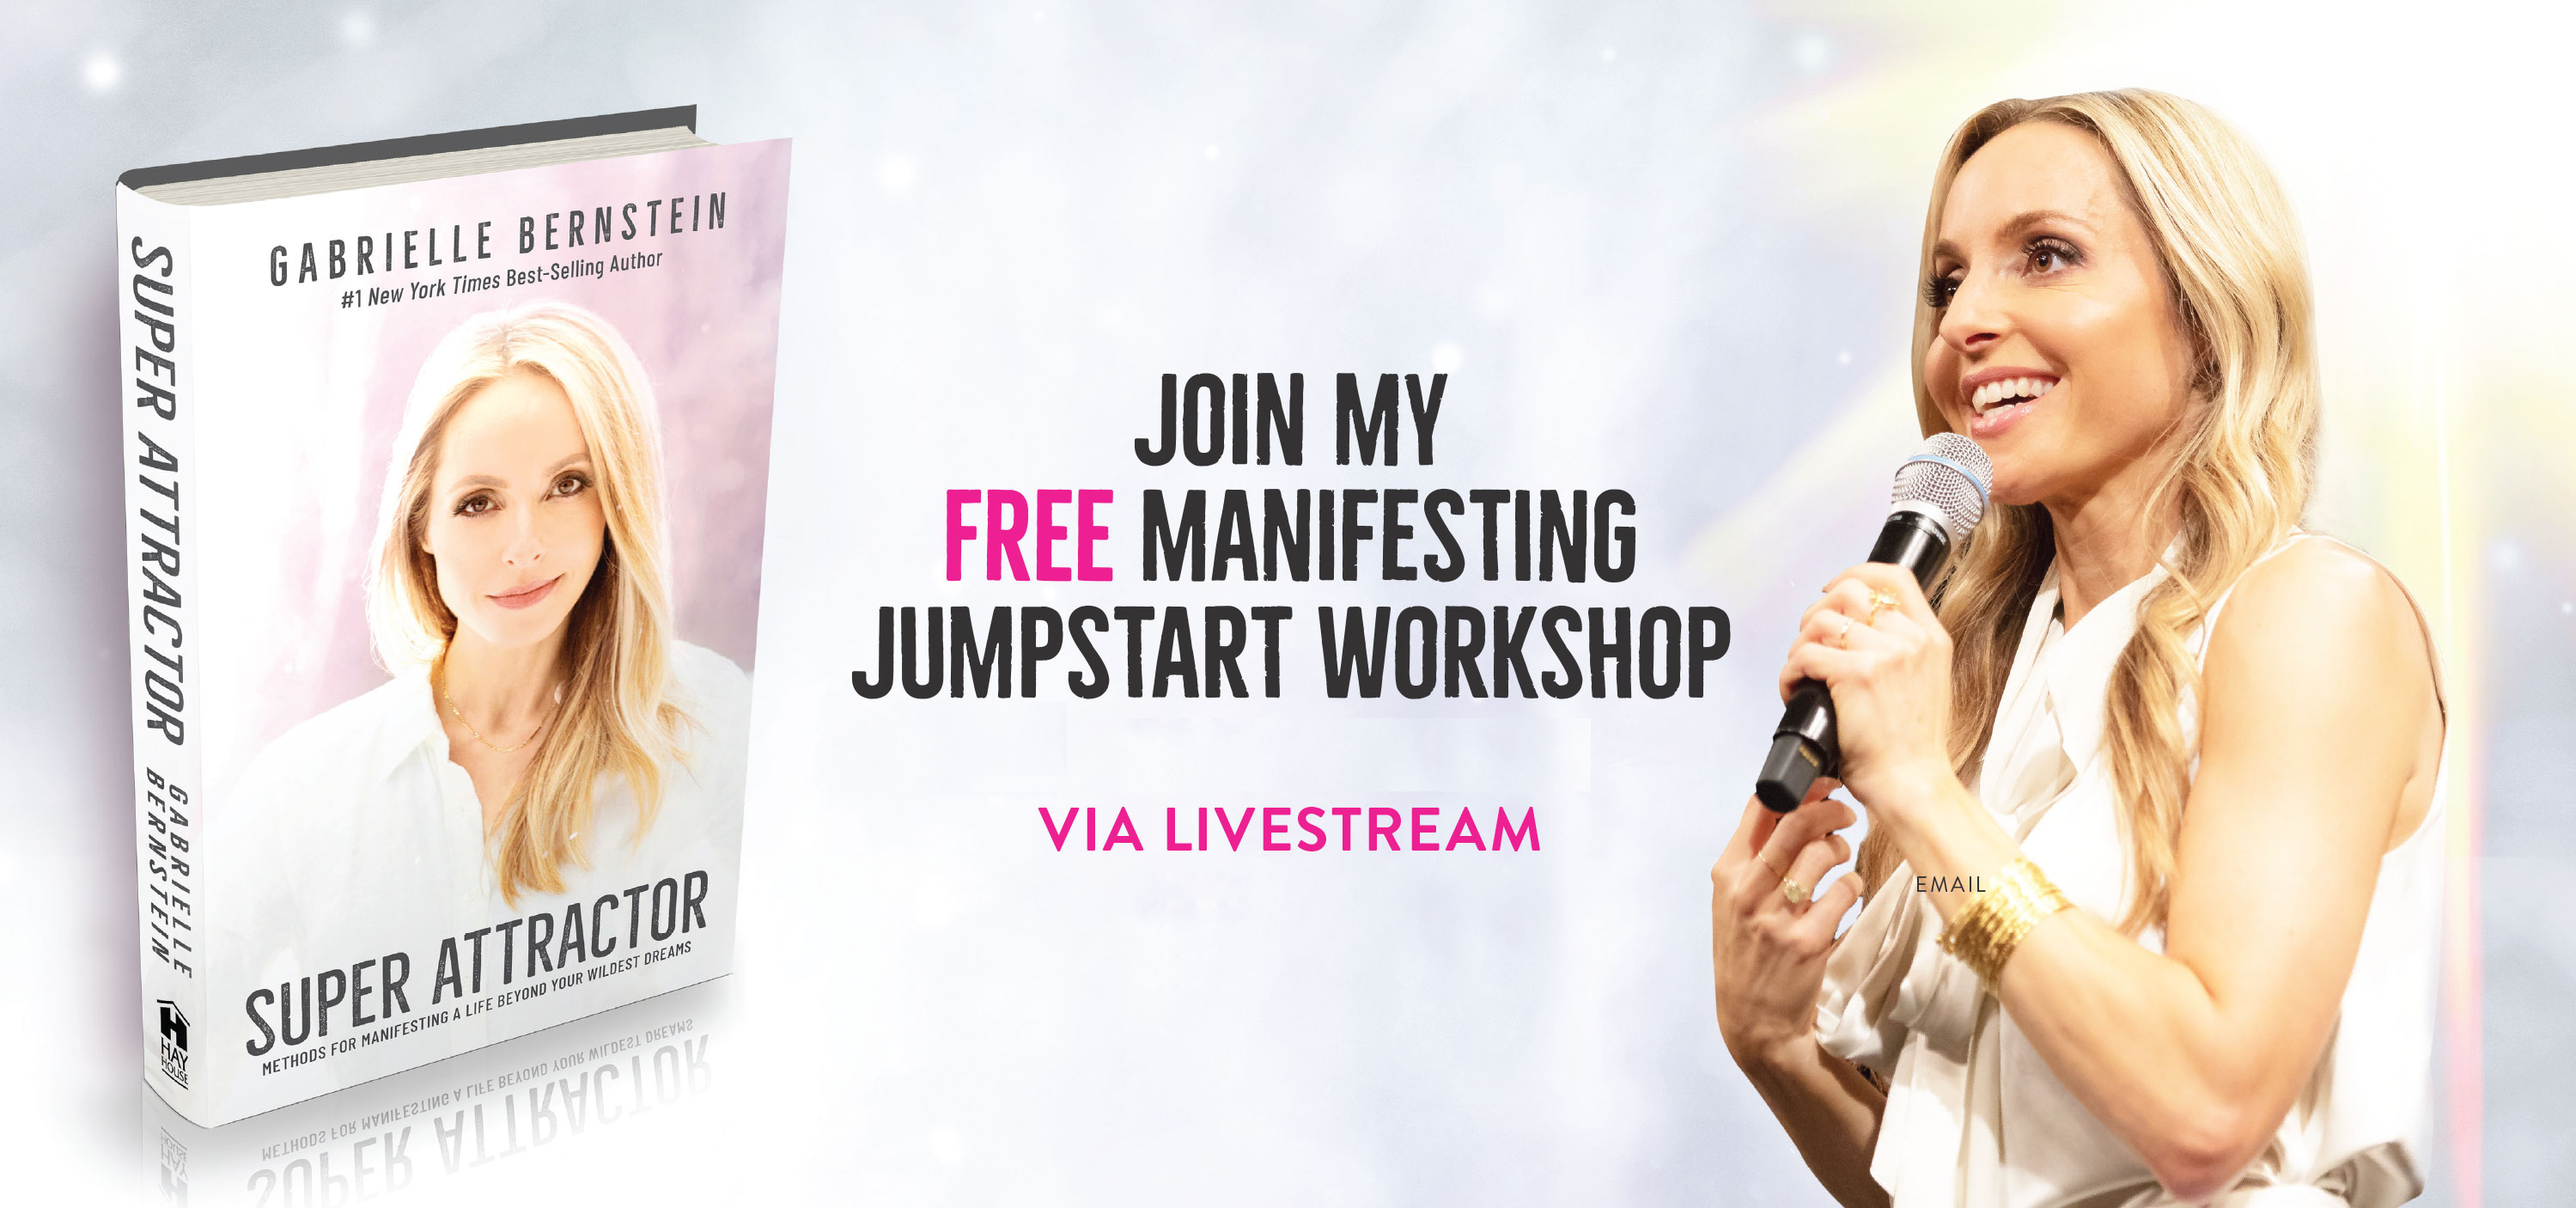 Free Manifesting Jumpstart Workshop when you preorder Gabby Bernstein's new book, Super Attractor (attend from anywhere)